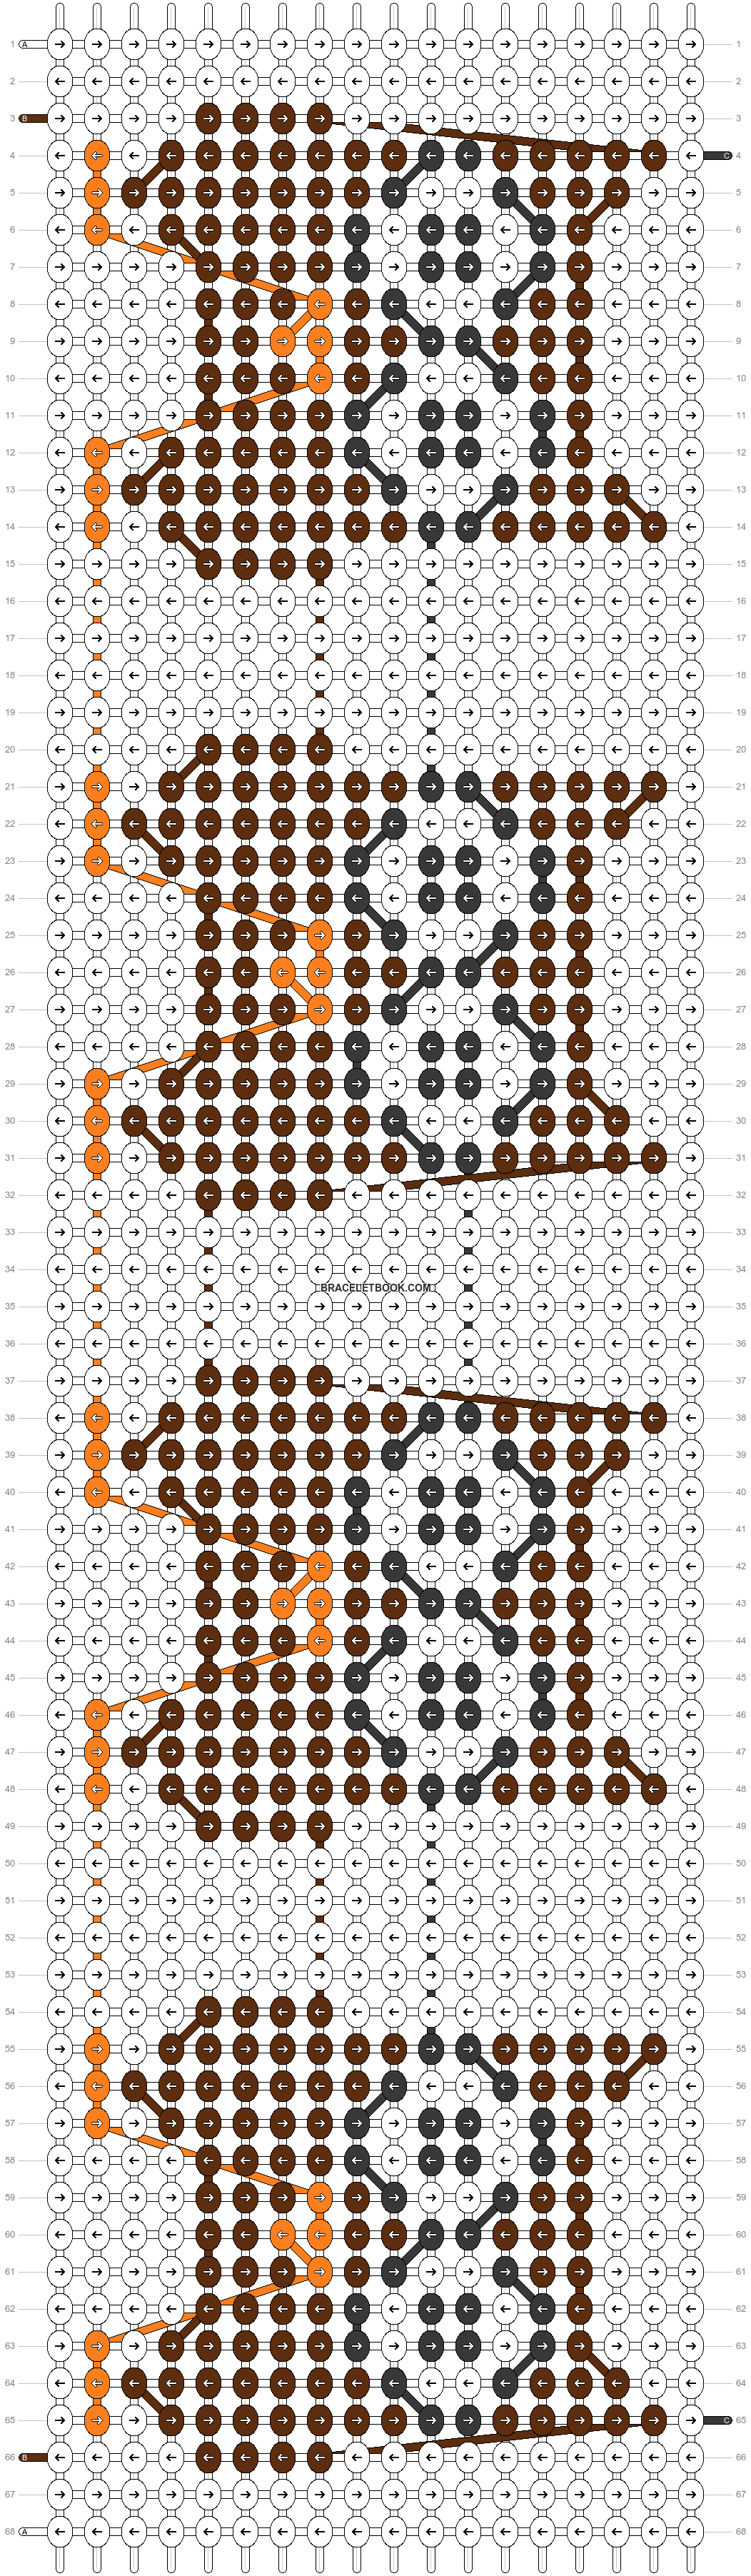 Alpha Pattern #21668 added by kmatyi70